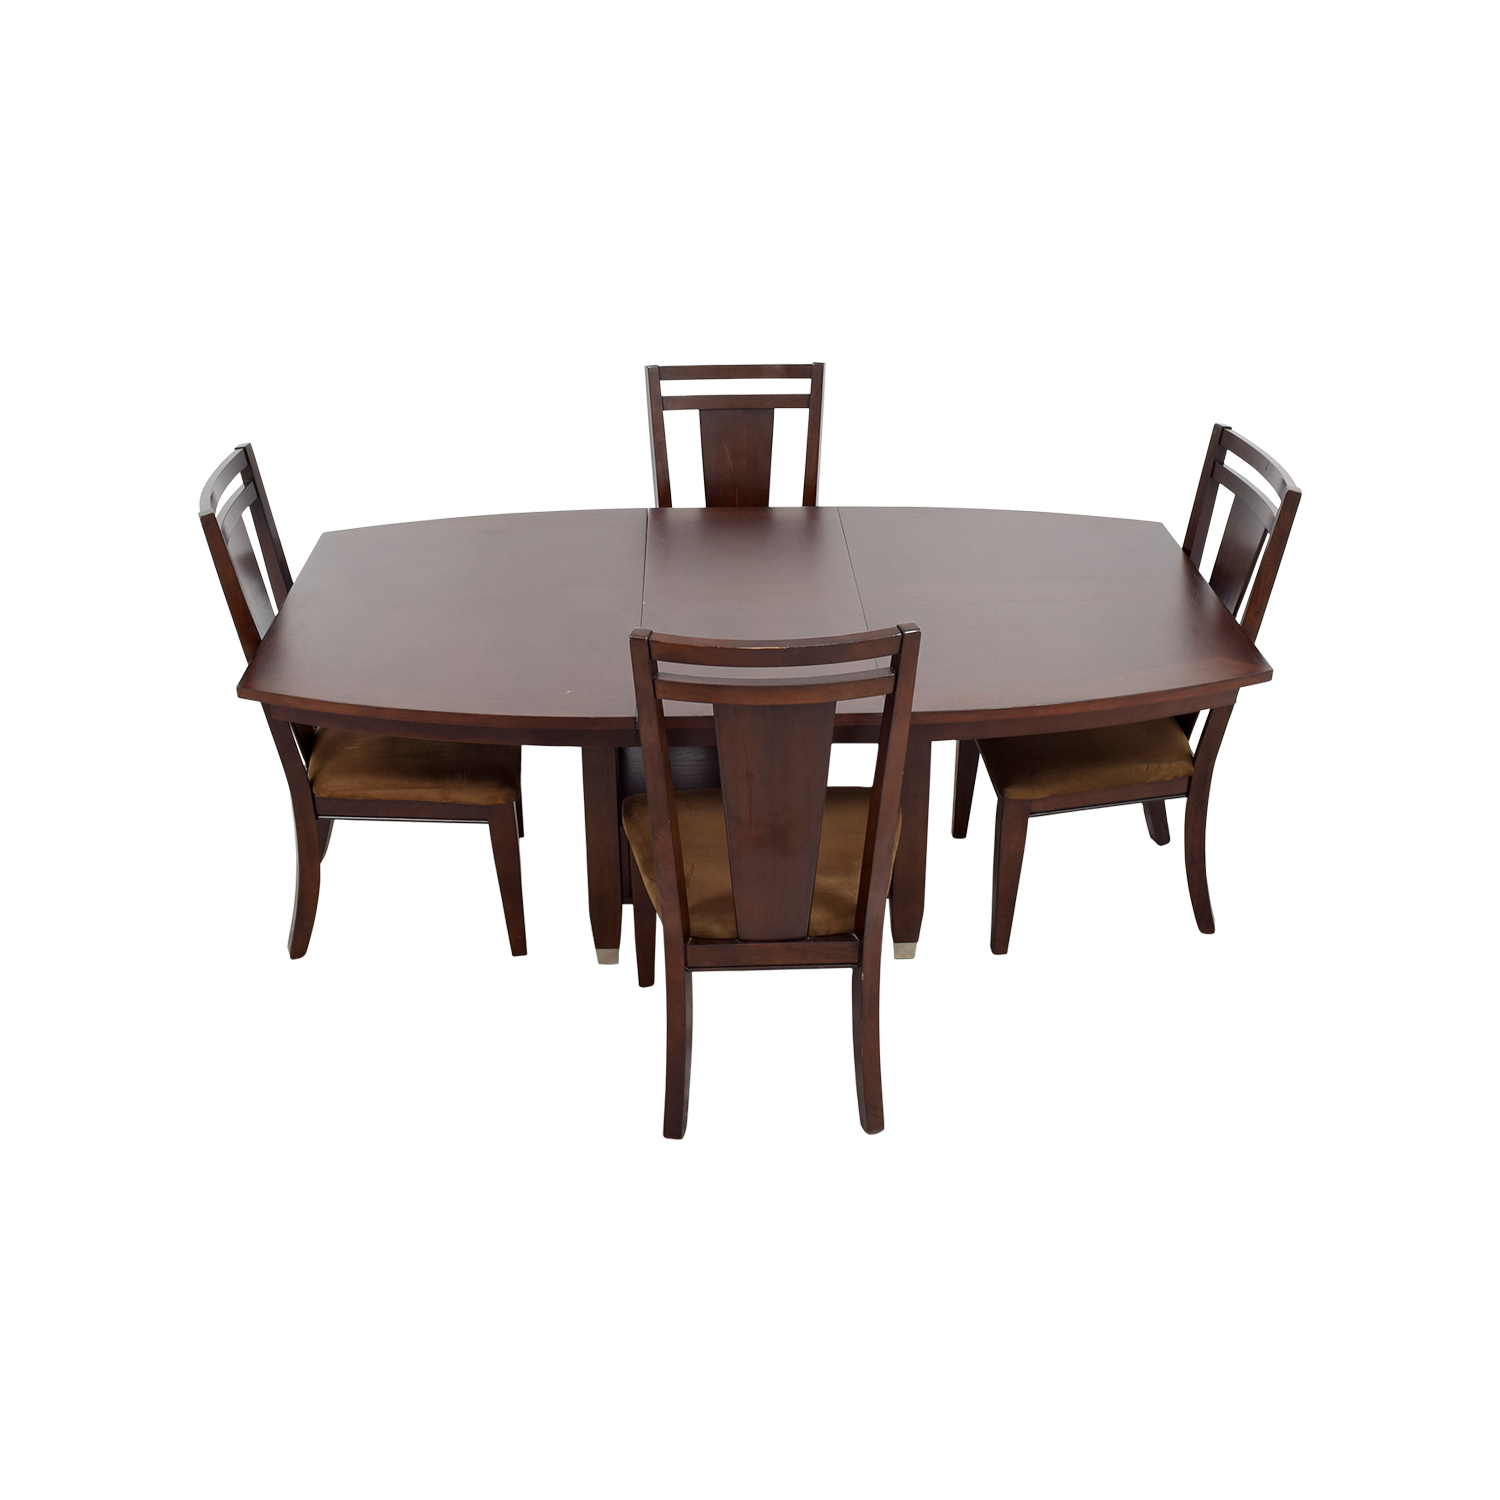 78 Off Broyhill Wood Dining Table Set Tables Second Hand Room Furniture Cape Town For Sale In Johannesburg